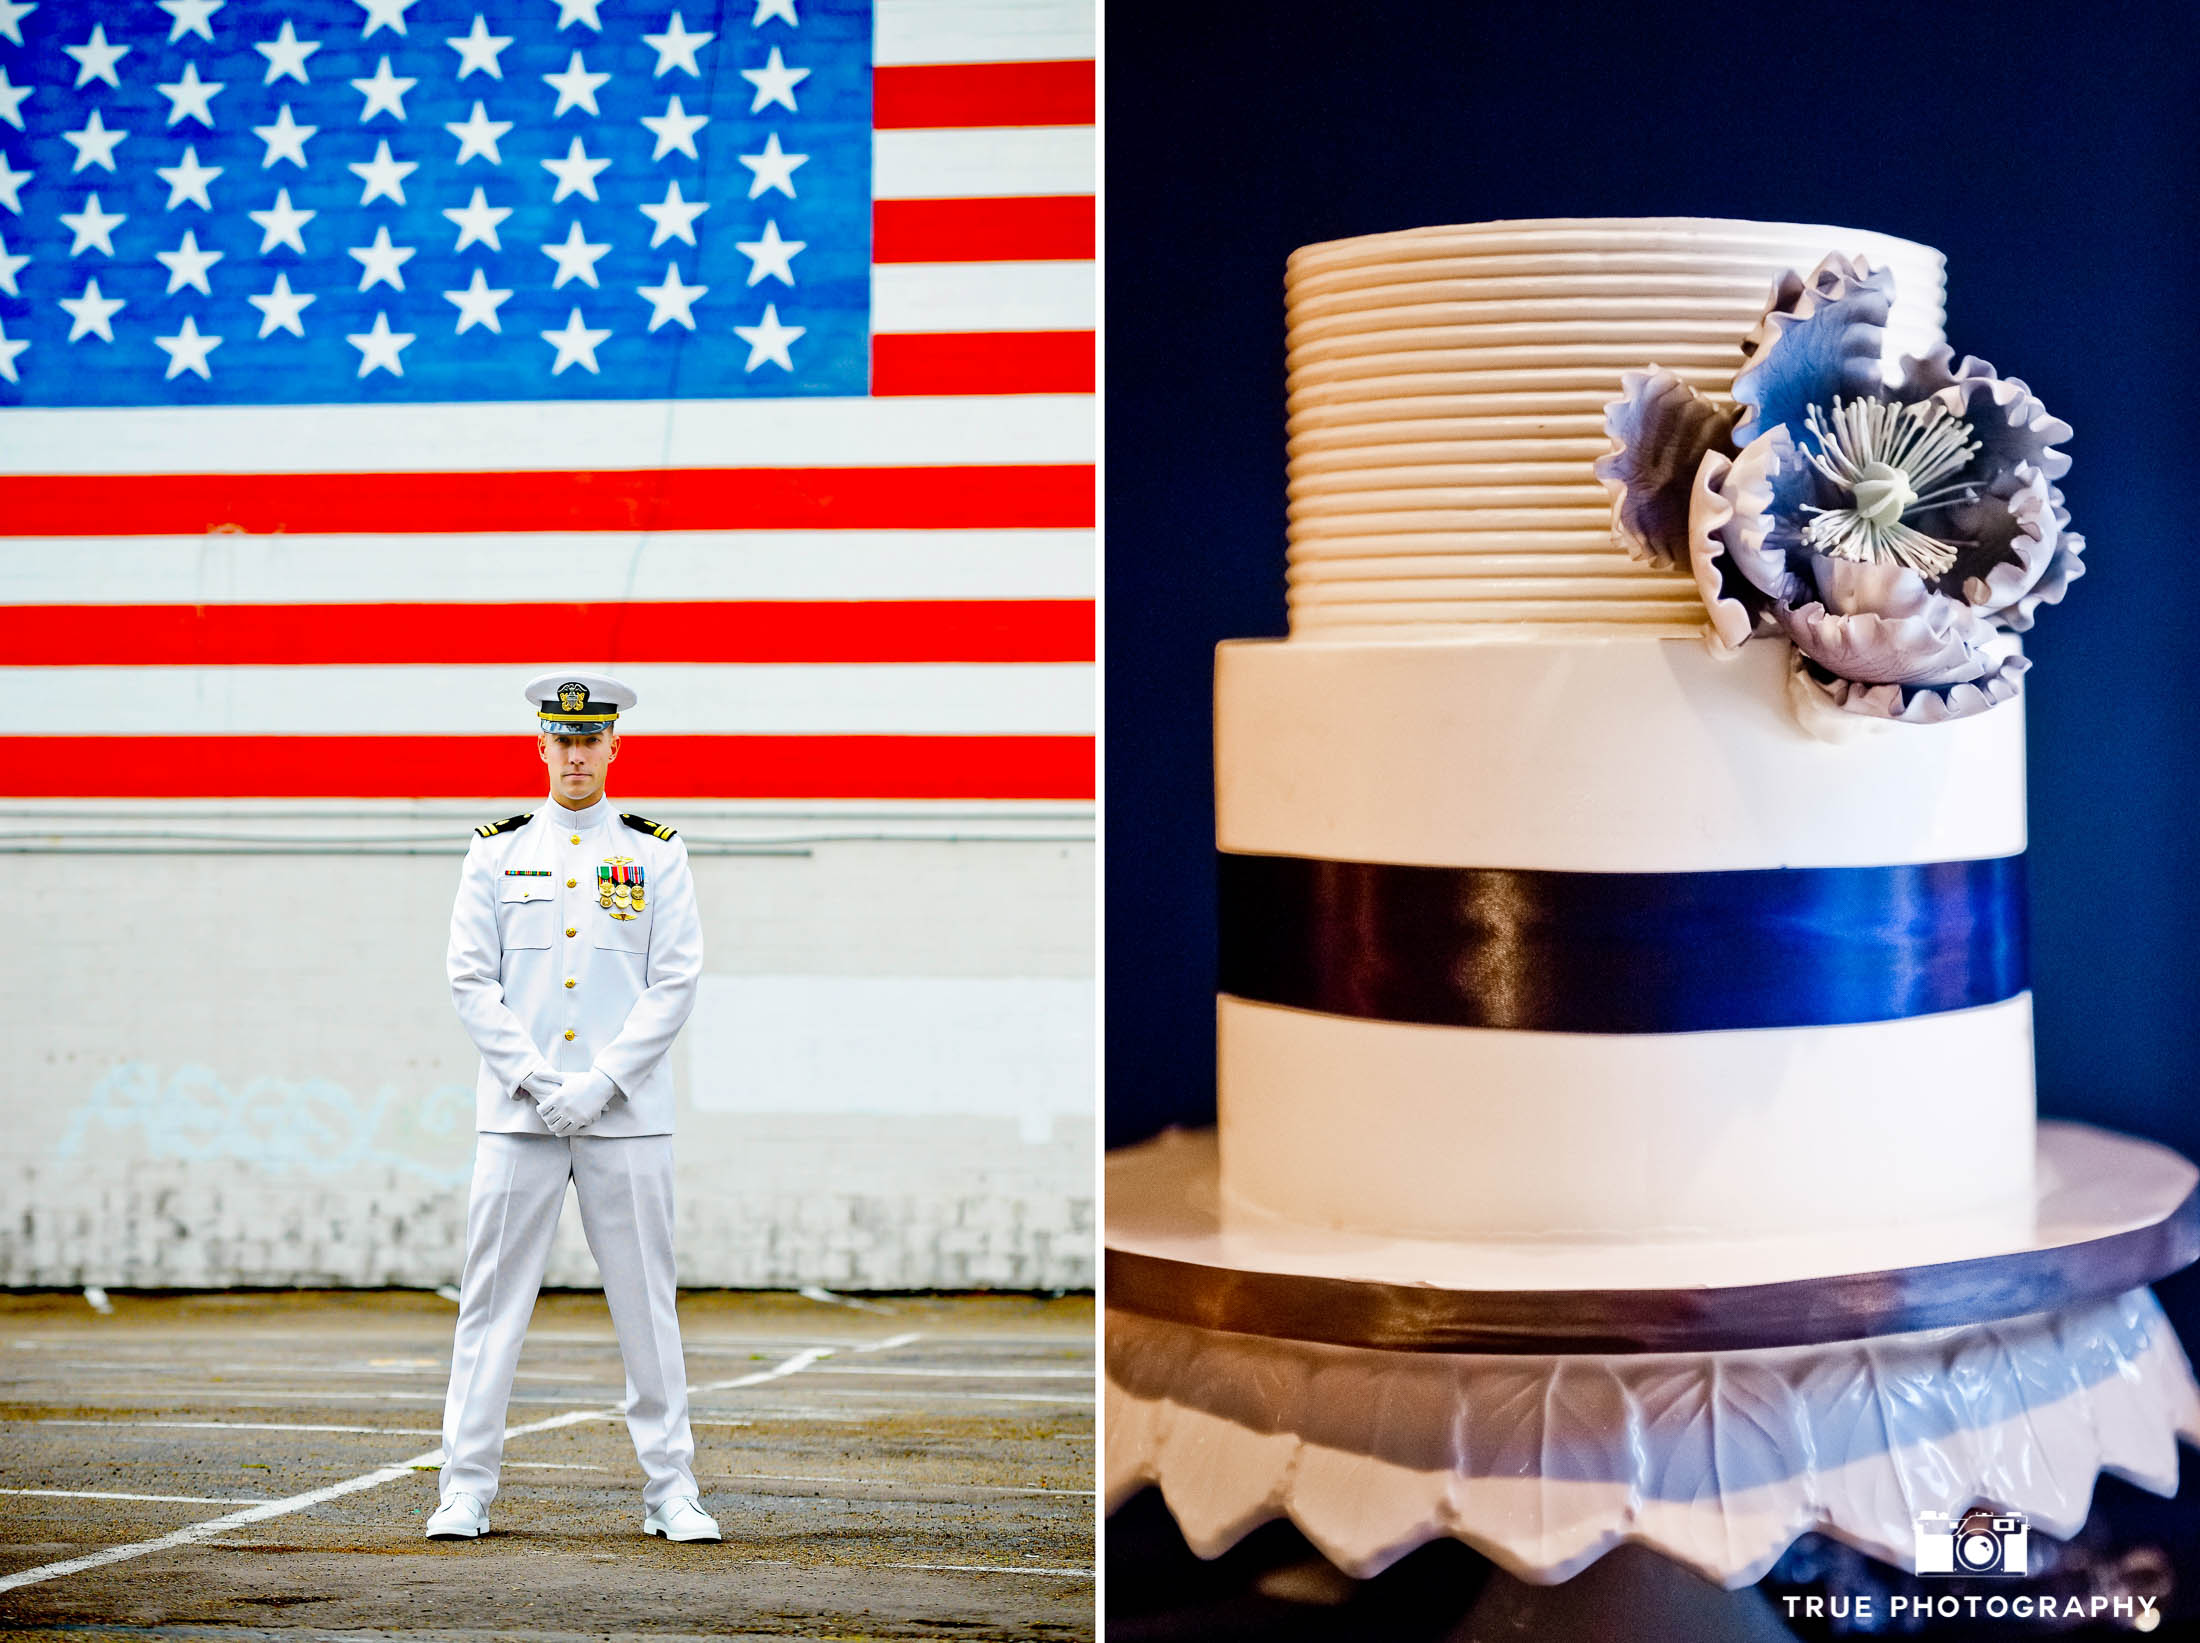 Patriotic Military Wedding Cake